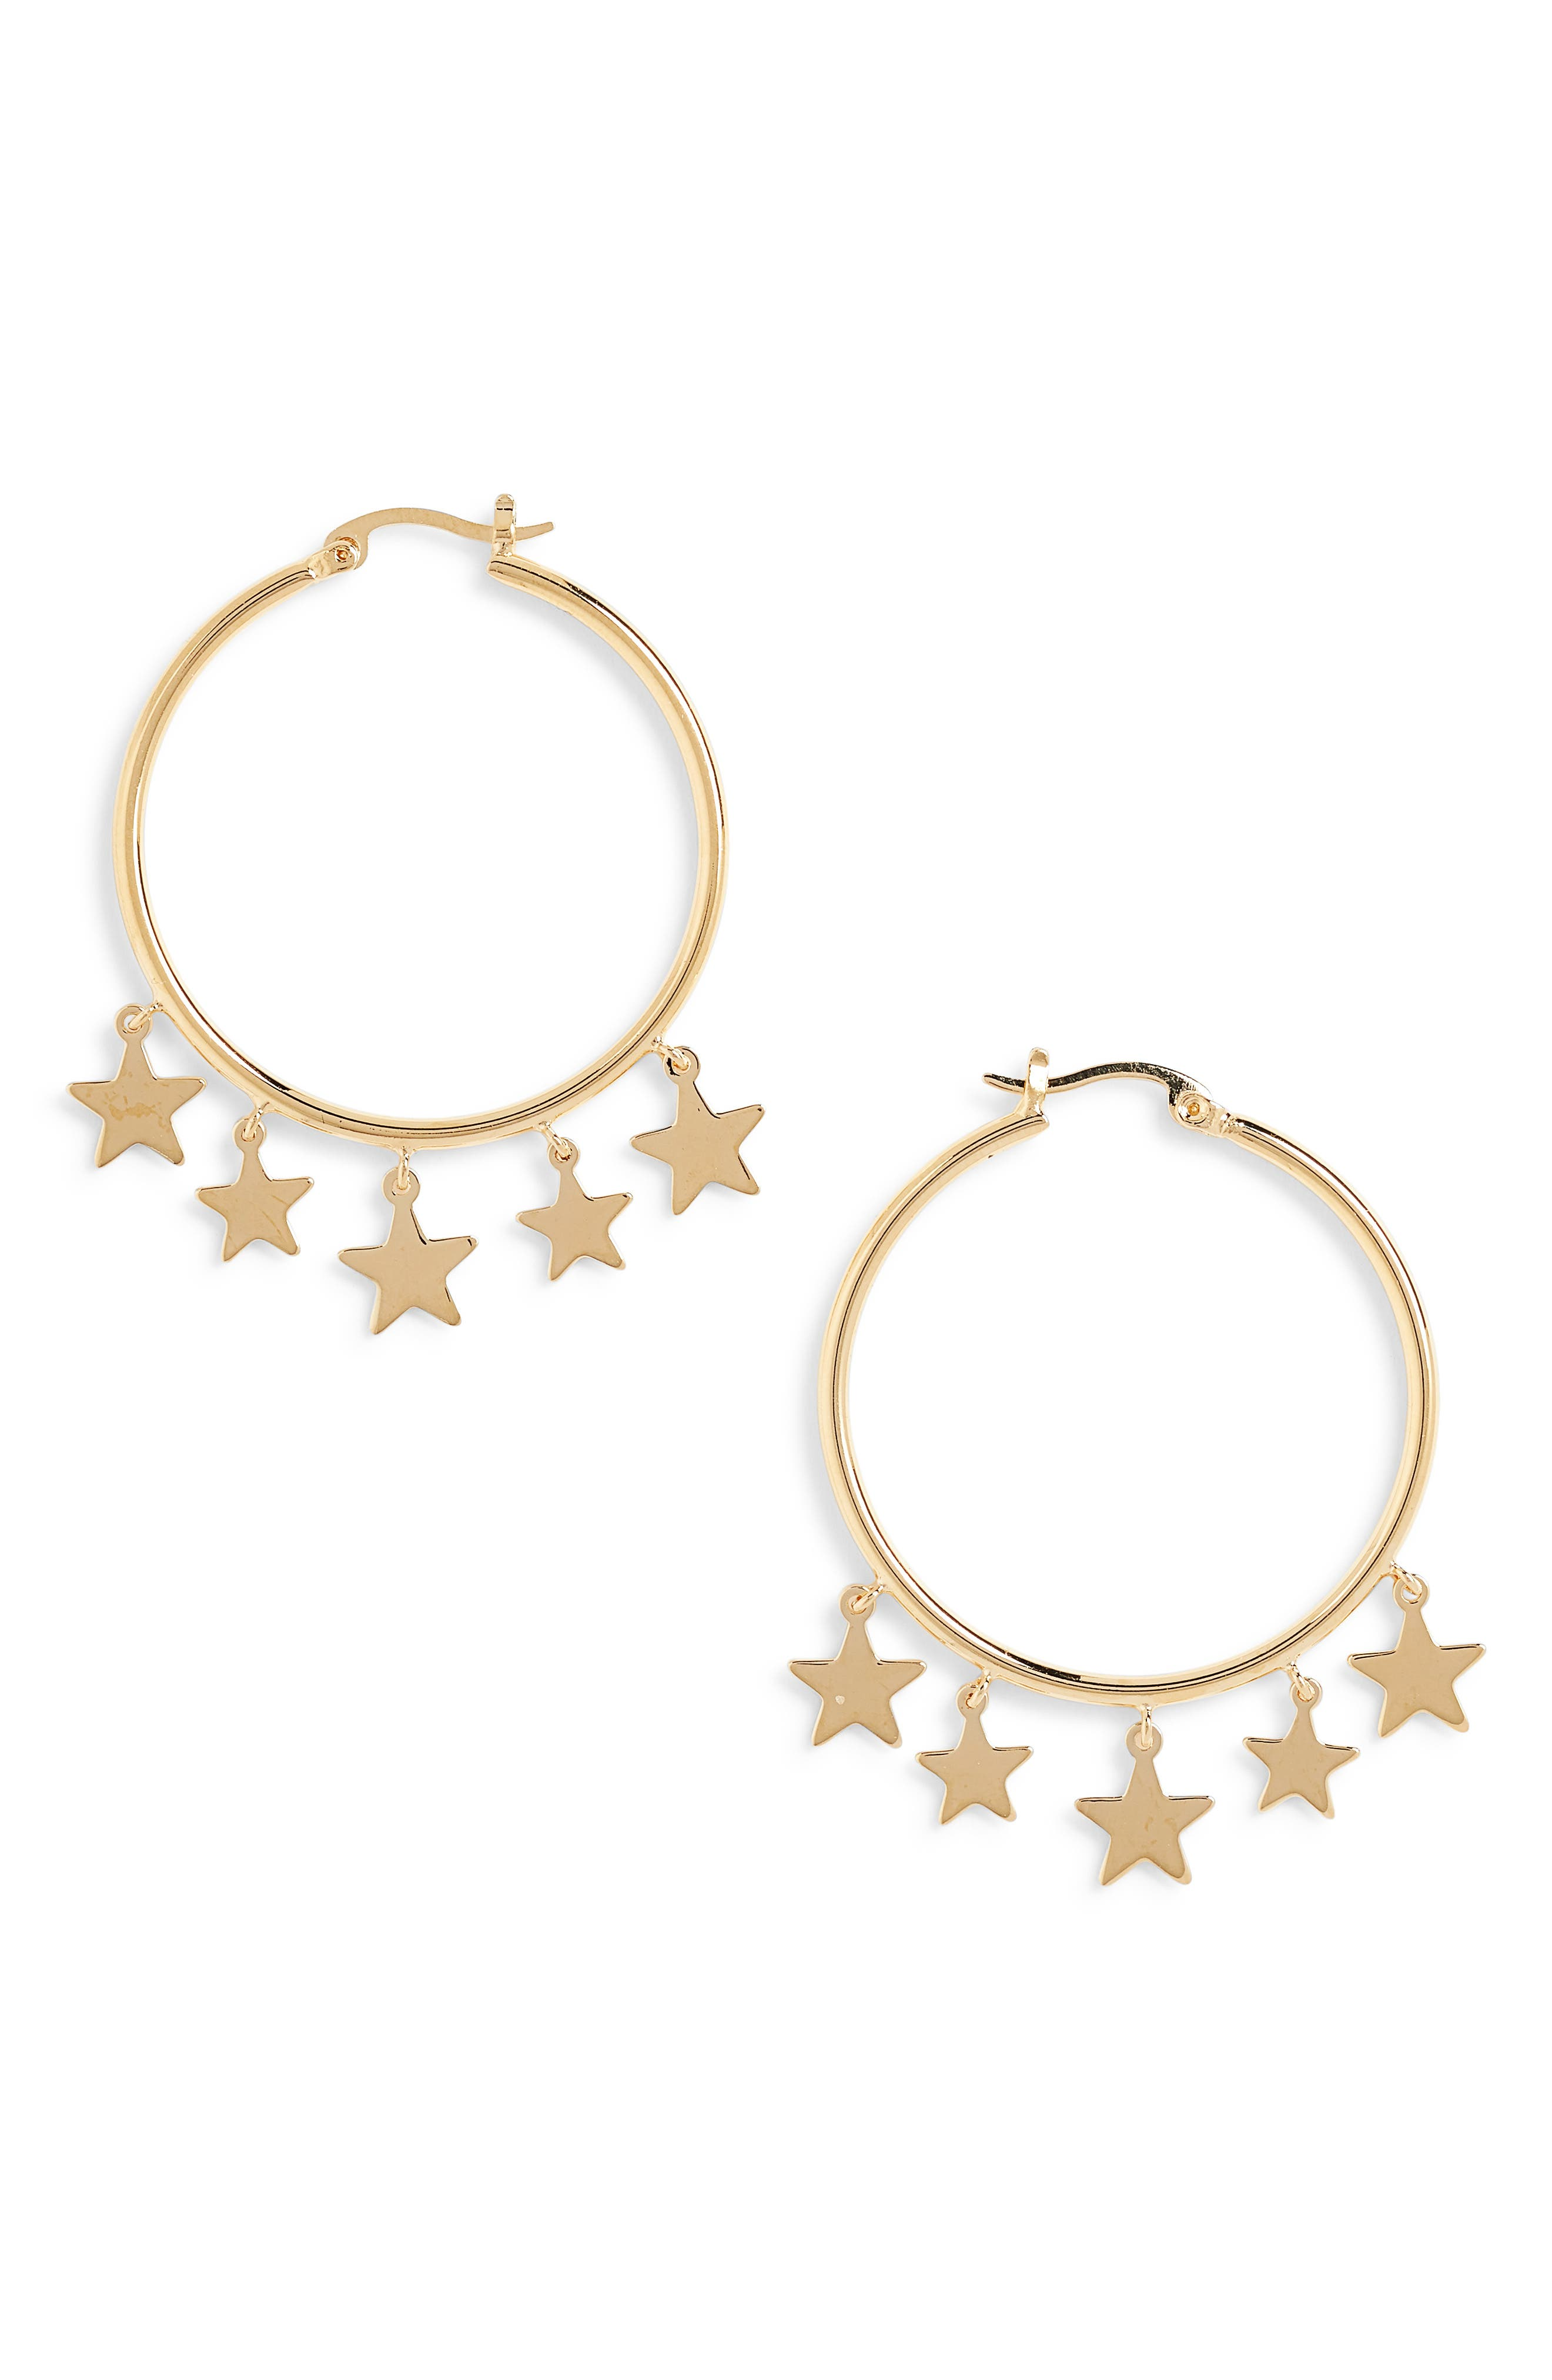 Star charms dangle delicately from contemporary hoop earrings plated in gleaming 14-karat gold. Style Name: Sterling Forever Star Dangle Hoop Earrings. Style Number: 5763963. Available in stores.